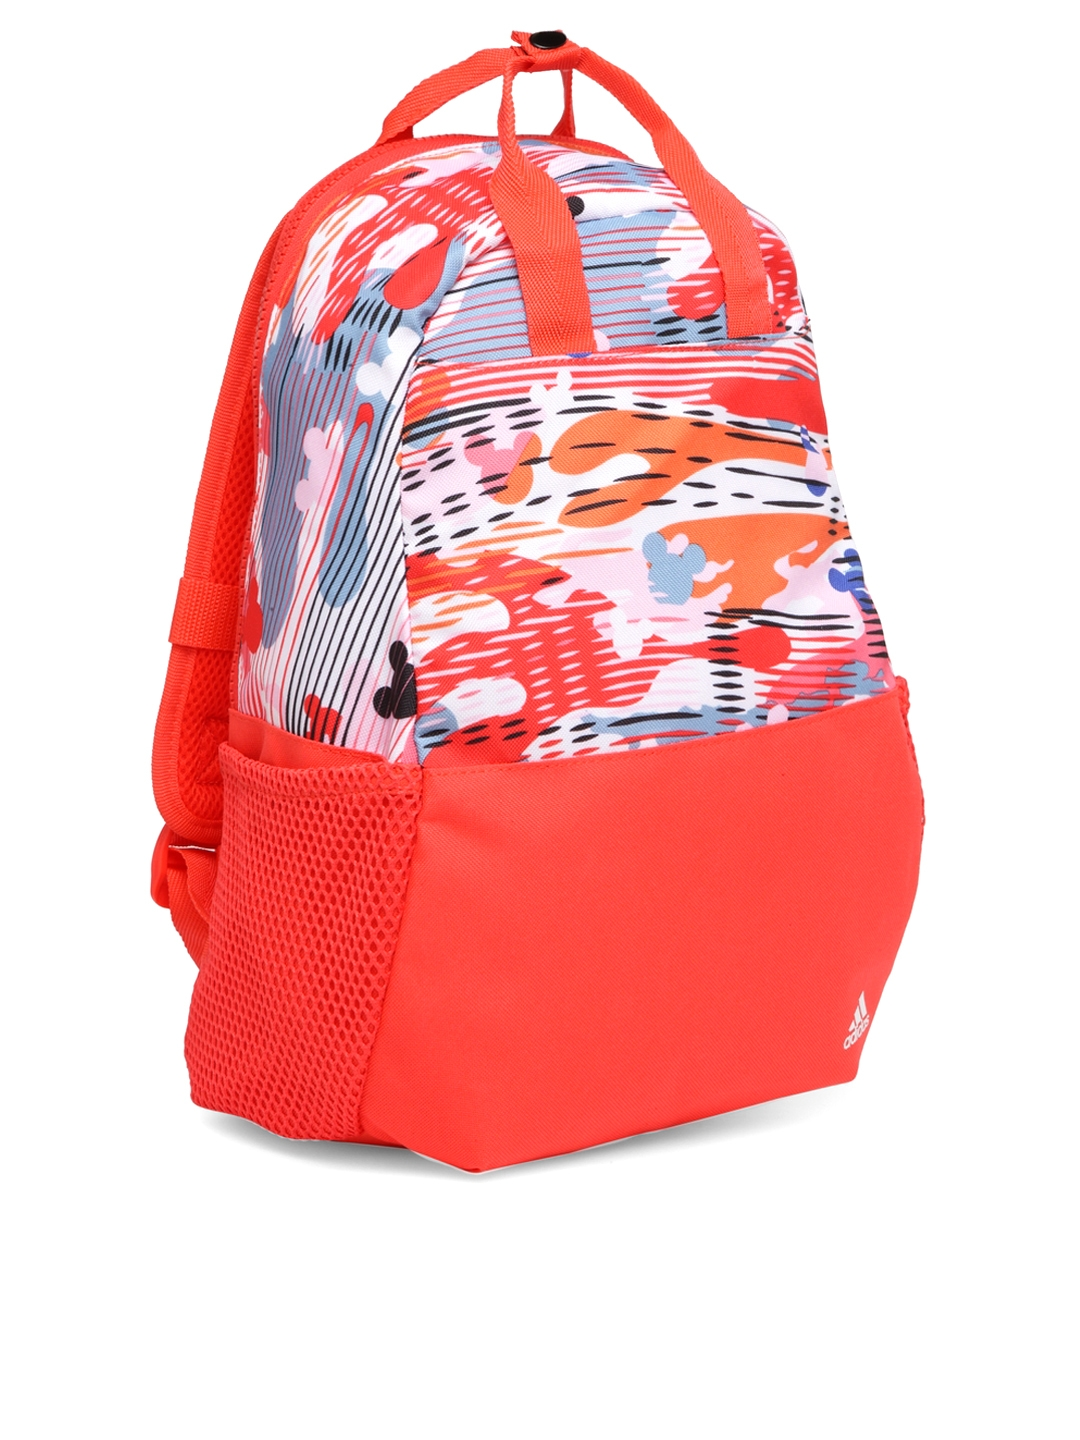 edb1304e91a5 Buy Adidas Unisex Orange   White DY LK BP MSE Printed Backpack ...